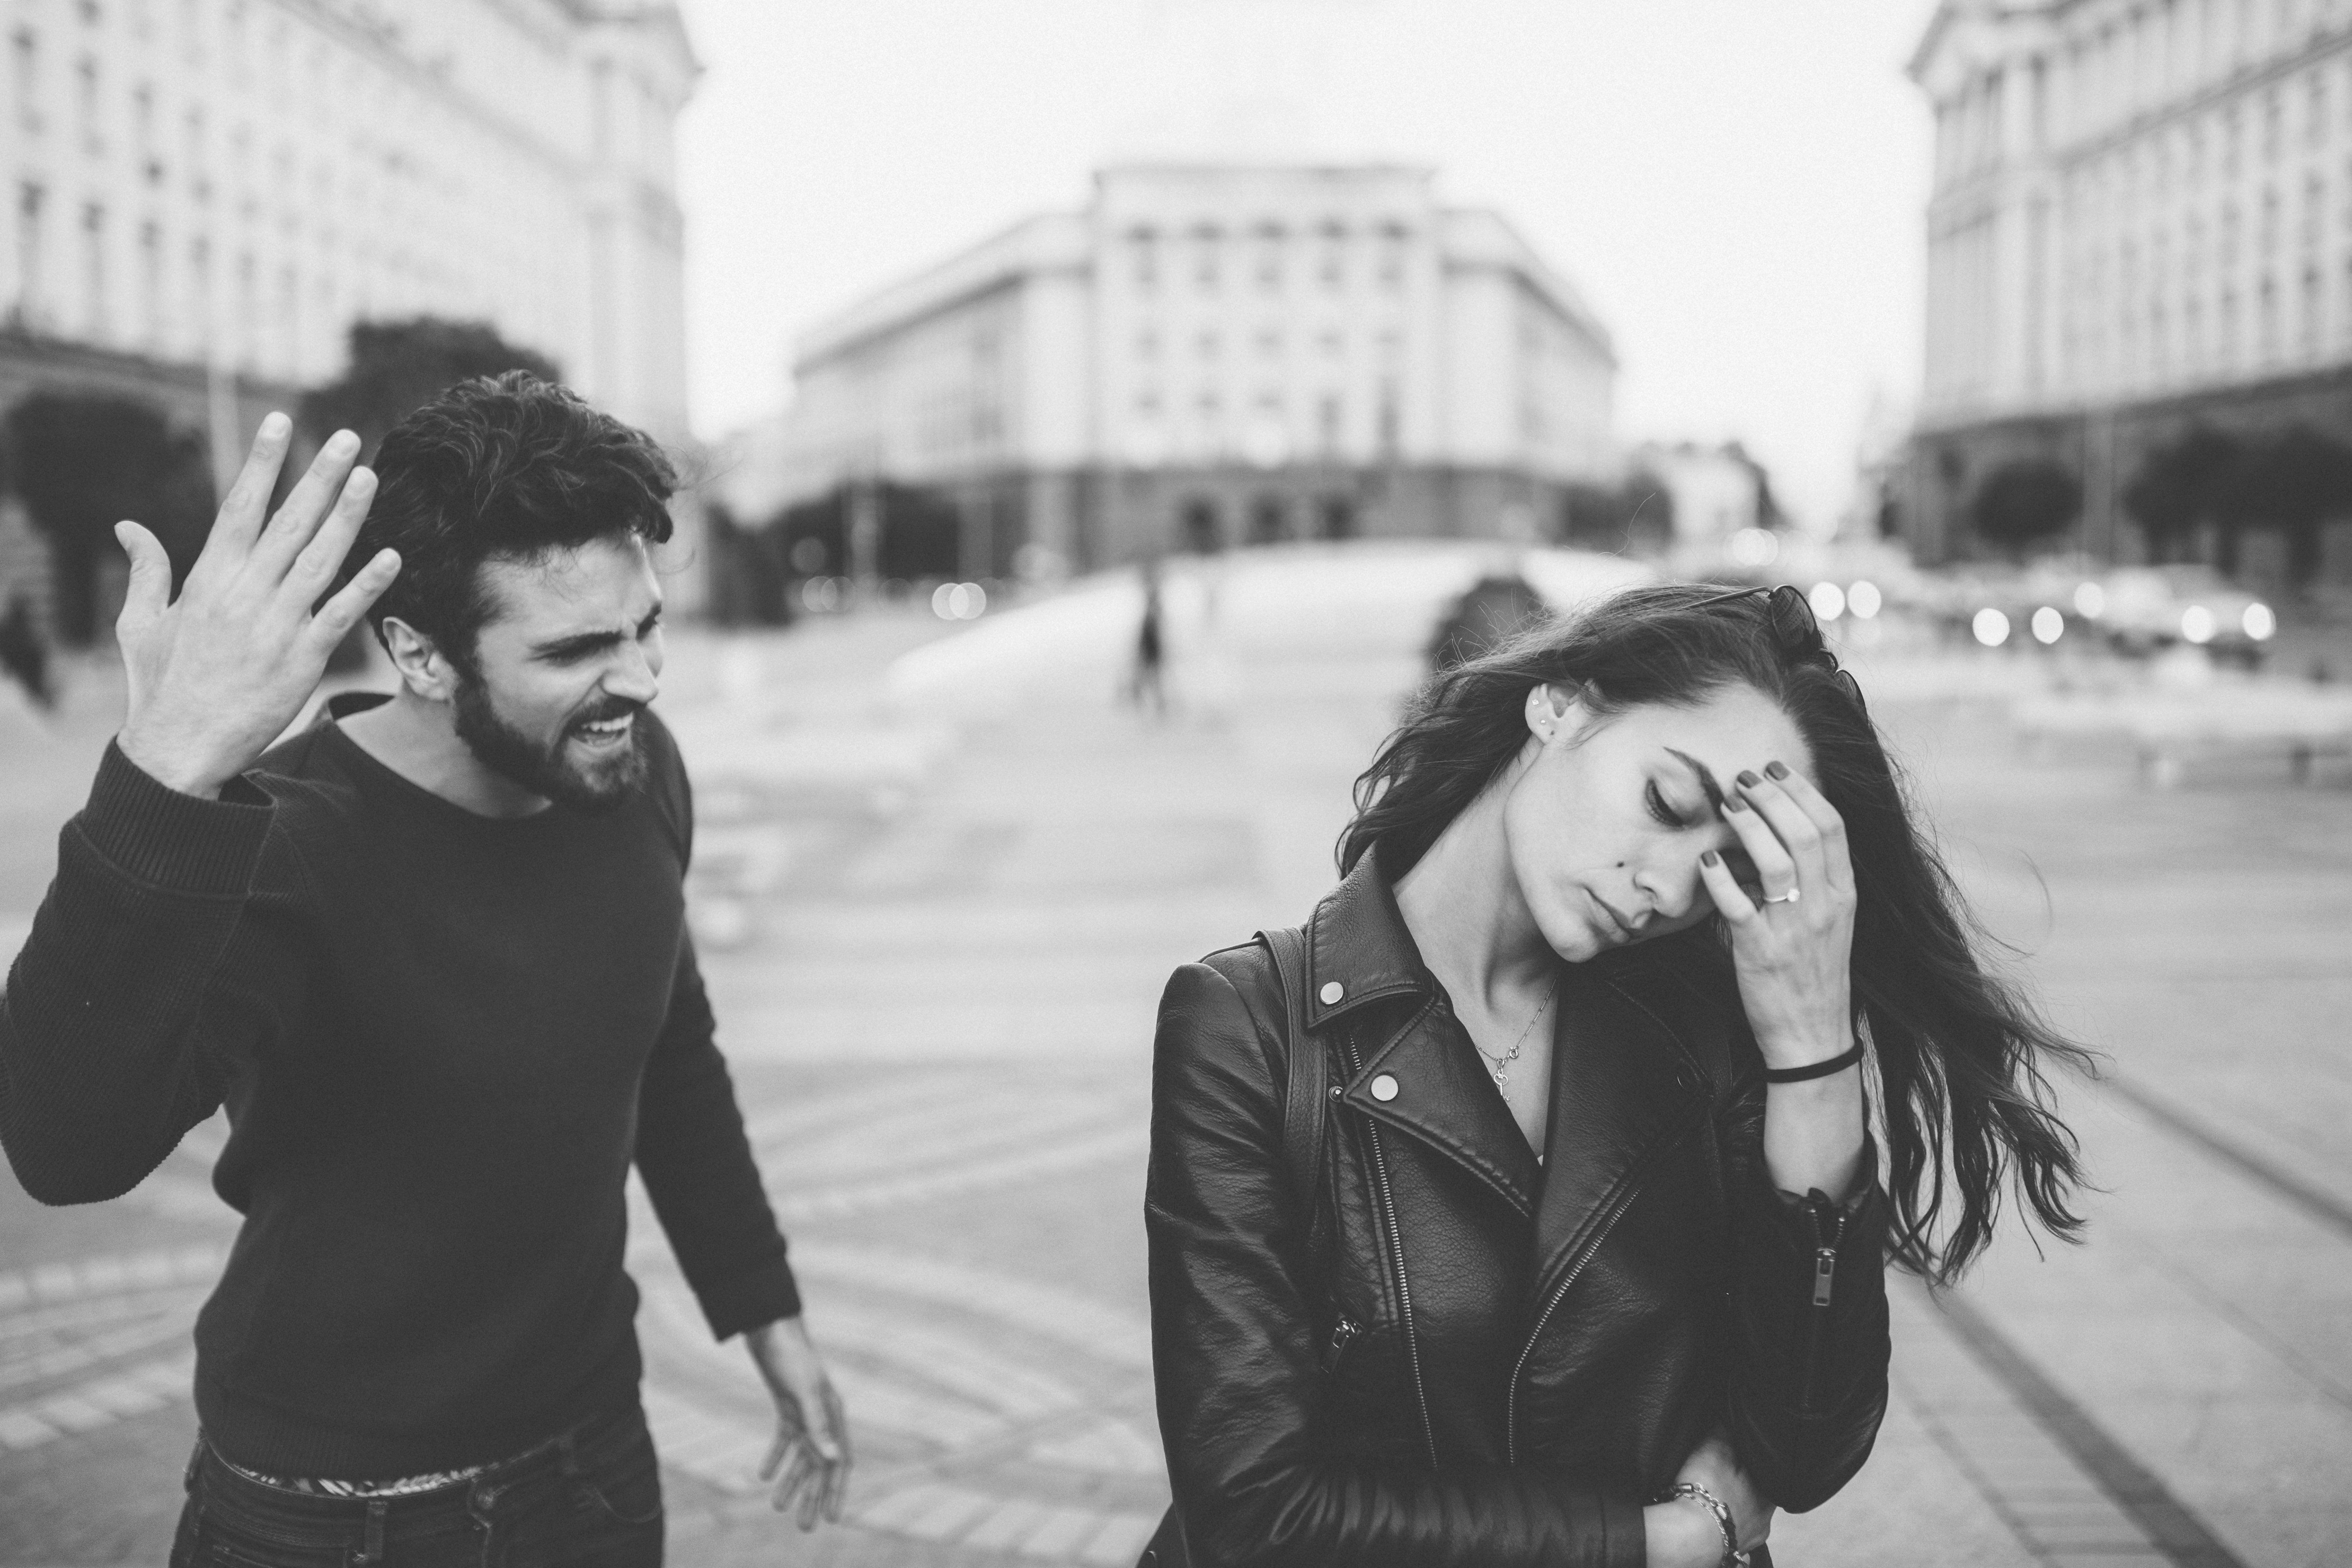 Emotional abuse, which is used togain power and controlin a relationship, may take a number of